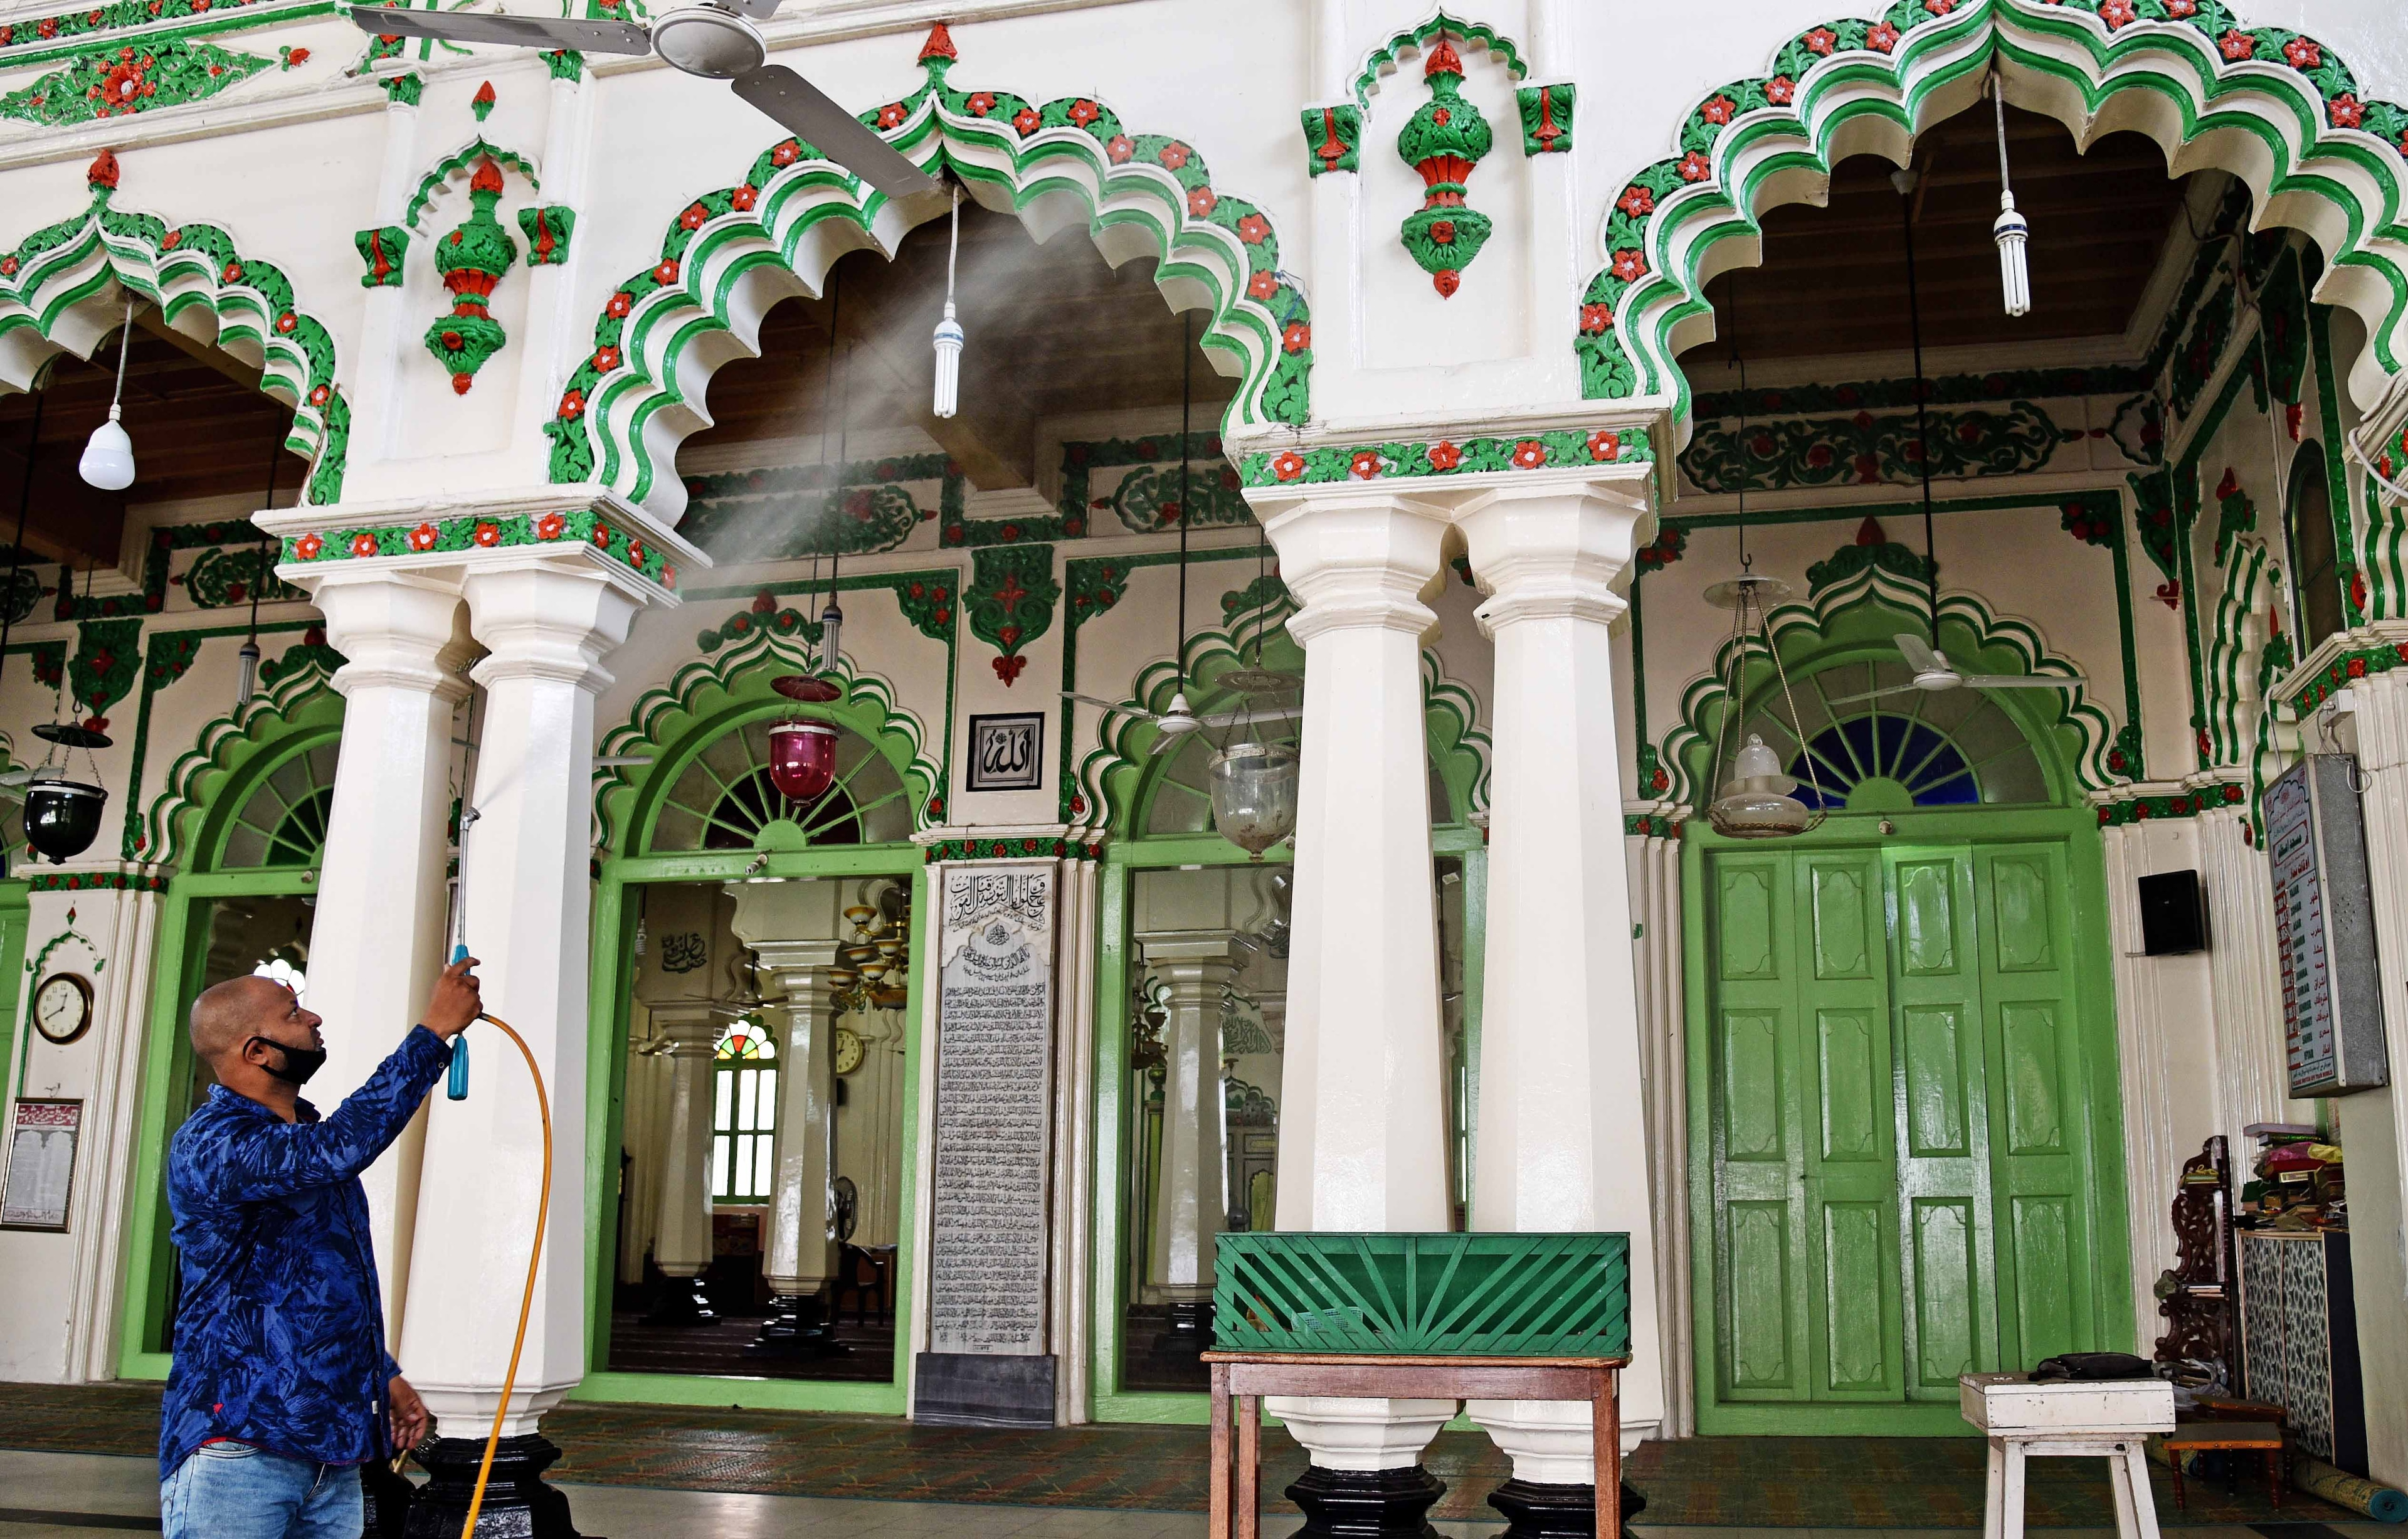 A worker sanitizing a Mosque at Shivajinagar, ahead of its reopening on 8th June as per the guidelines of the Government during coronavirus lockdown, in Bengaluru on Saturday.